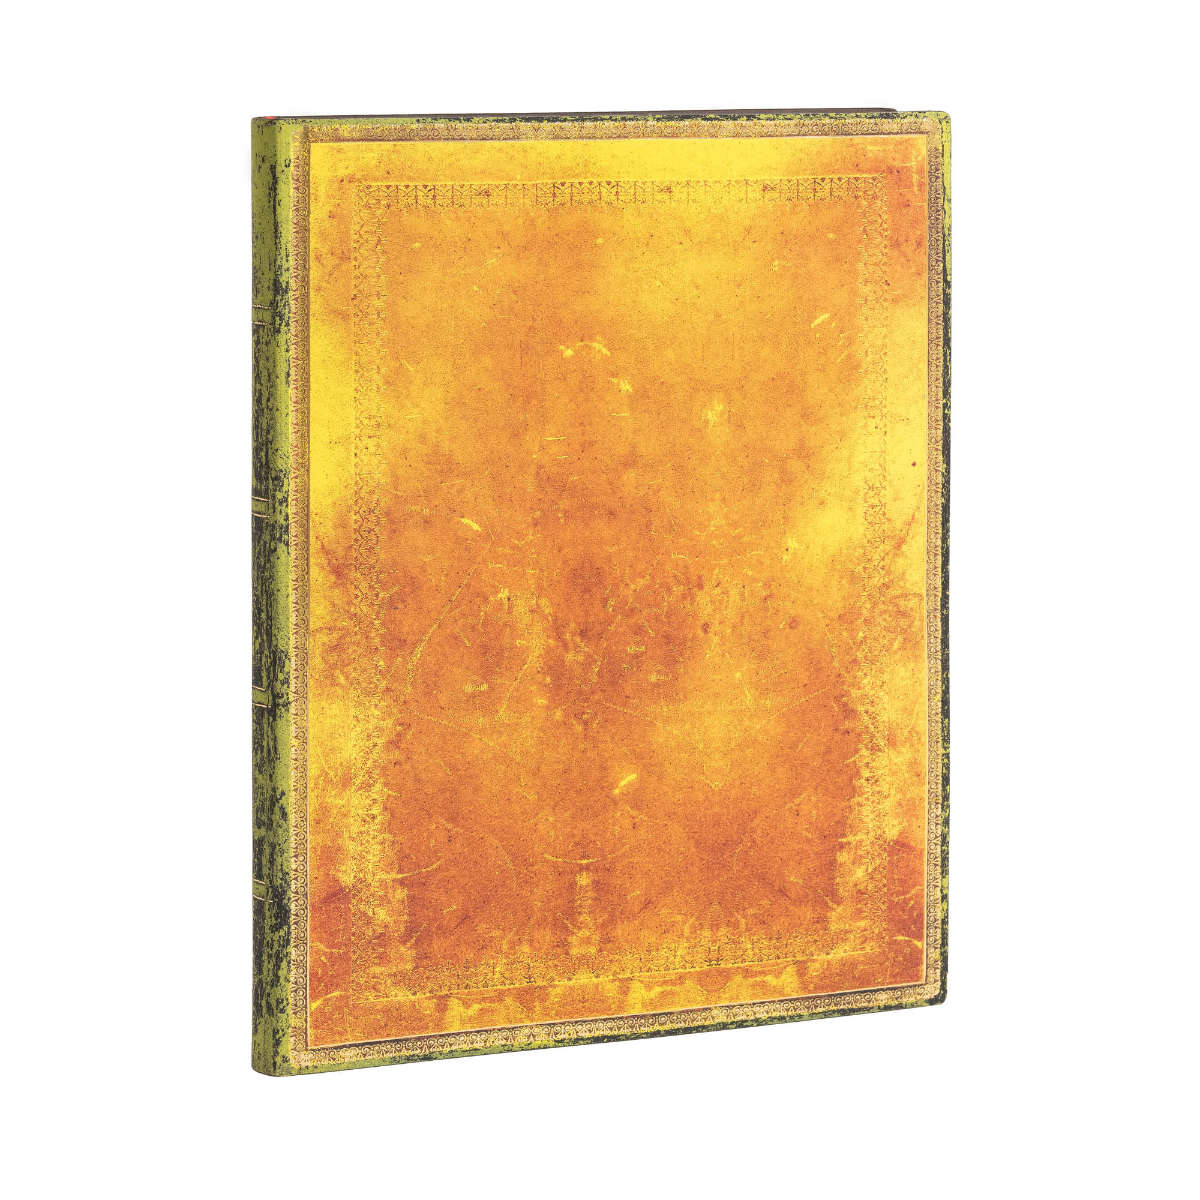 Paperblanks Flexis Old Leather Ochre Ultra 7x9 Inch 240 Pages